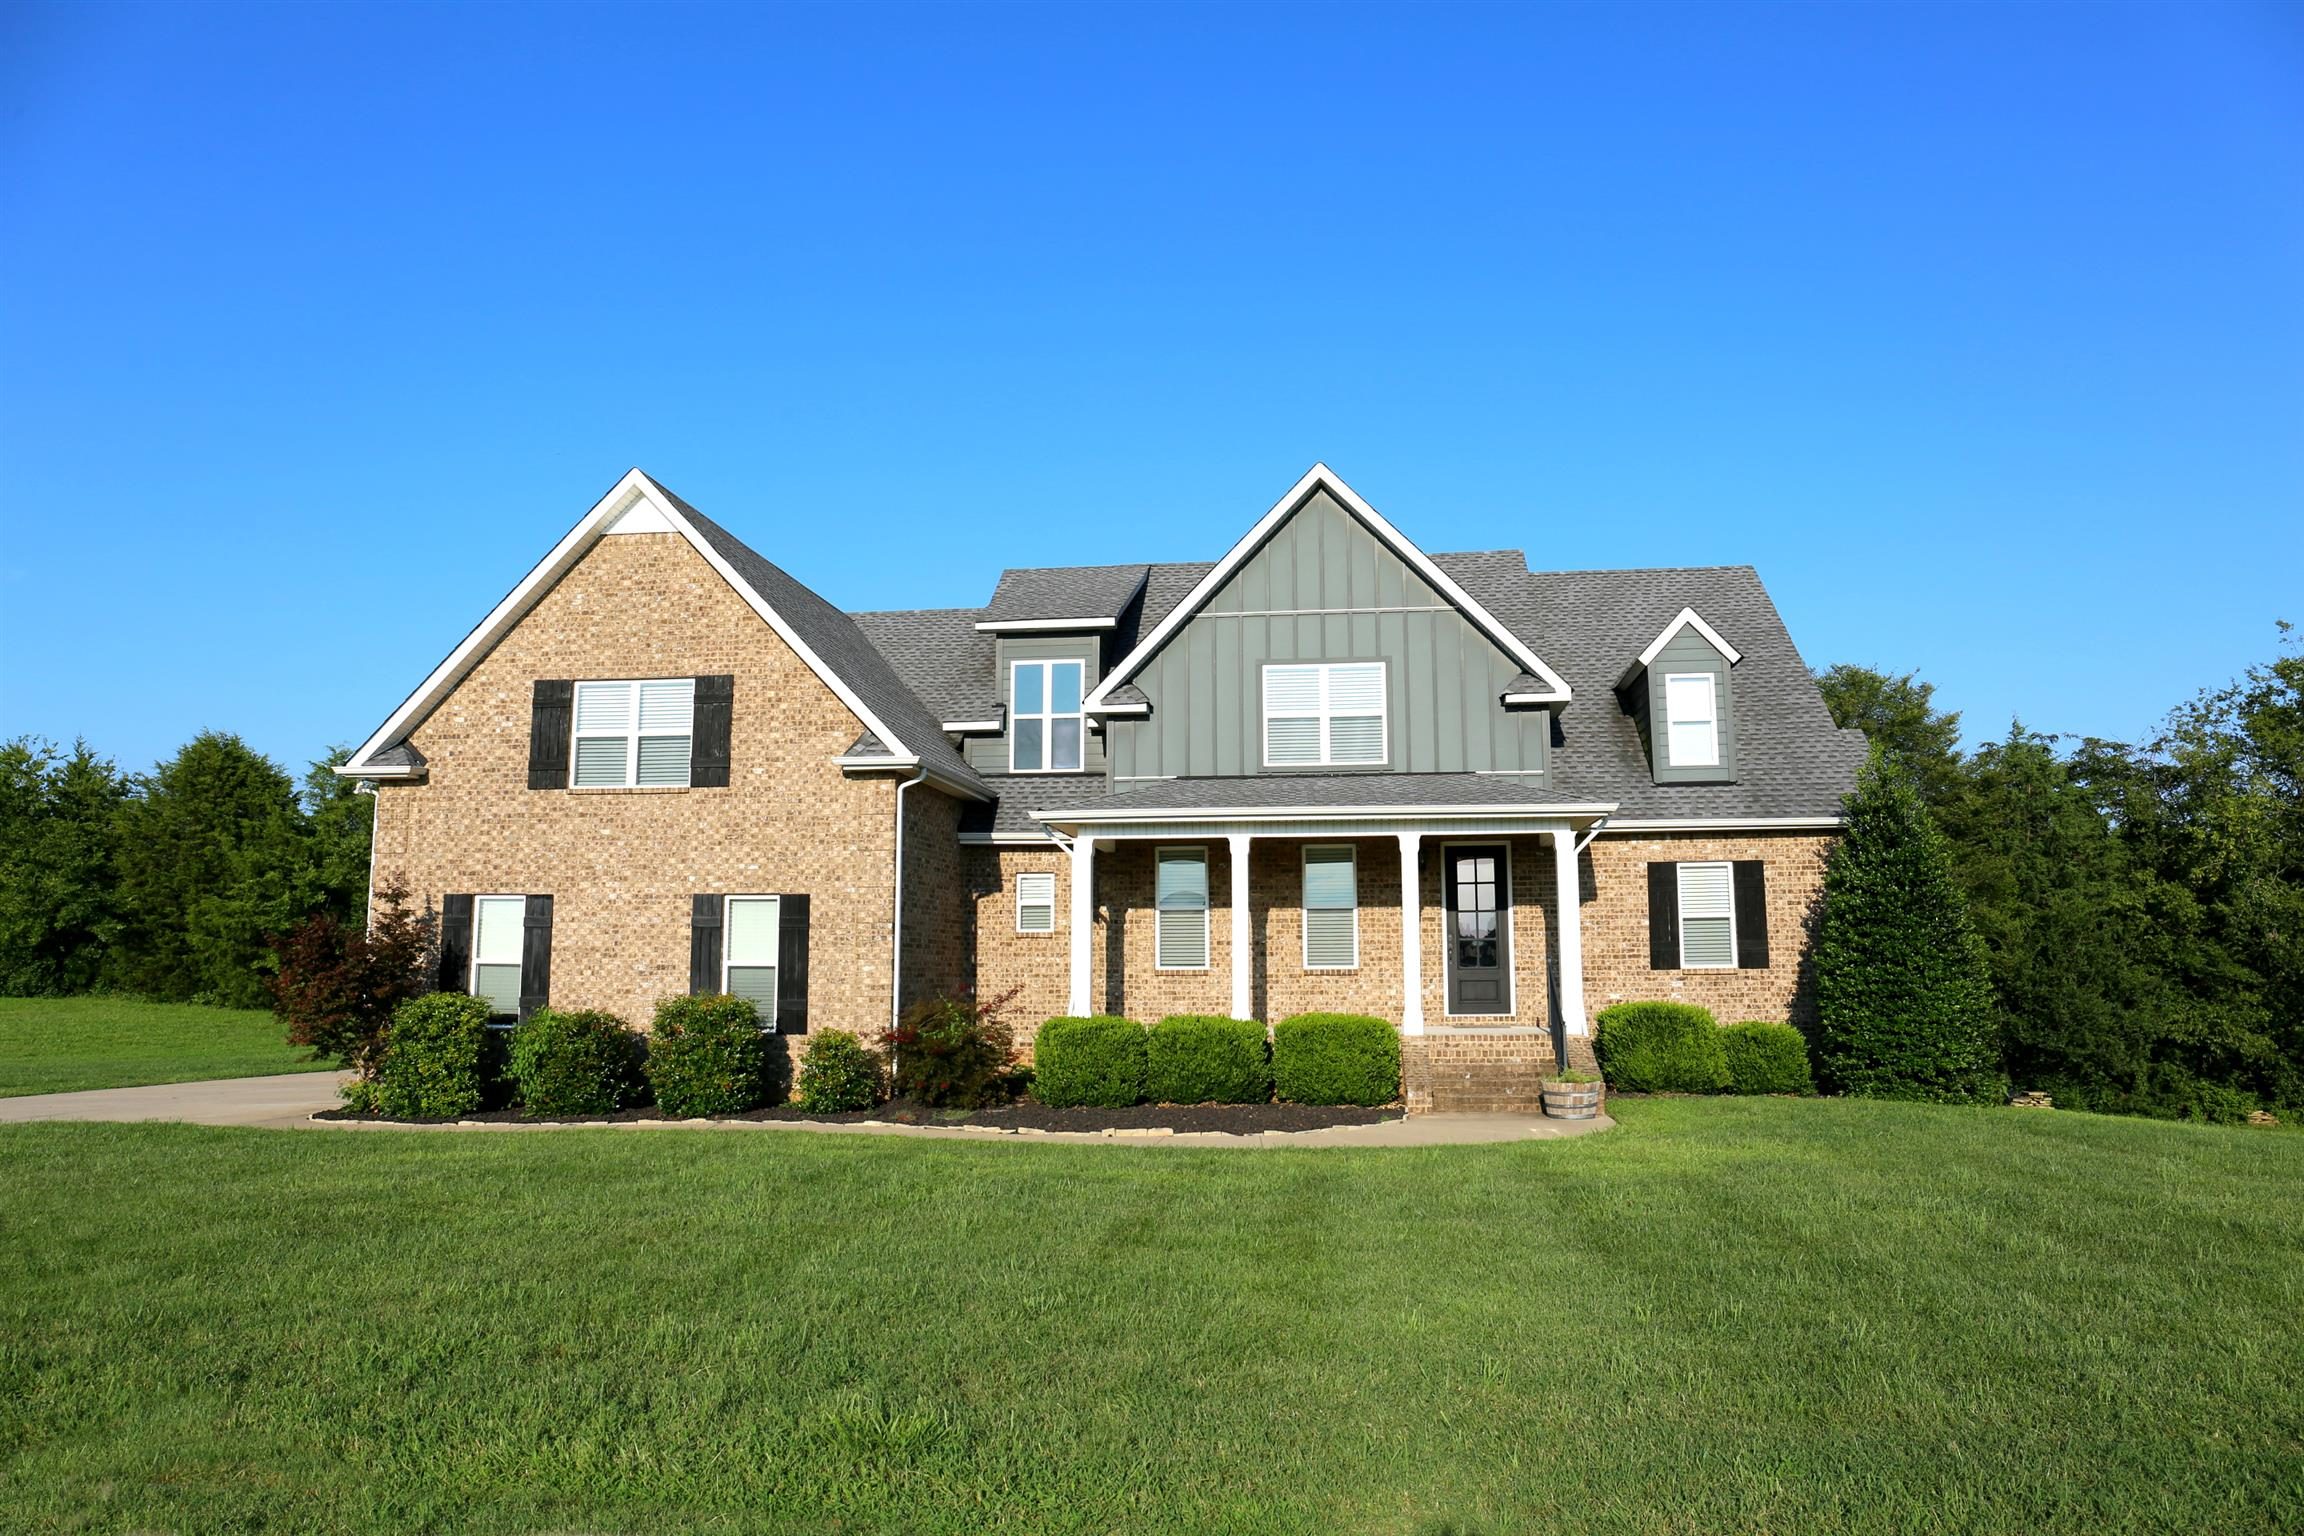 1029 Glastonbury Way, Murfreesboro, TN 37129 - Murfreesboro, TN real estate listing